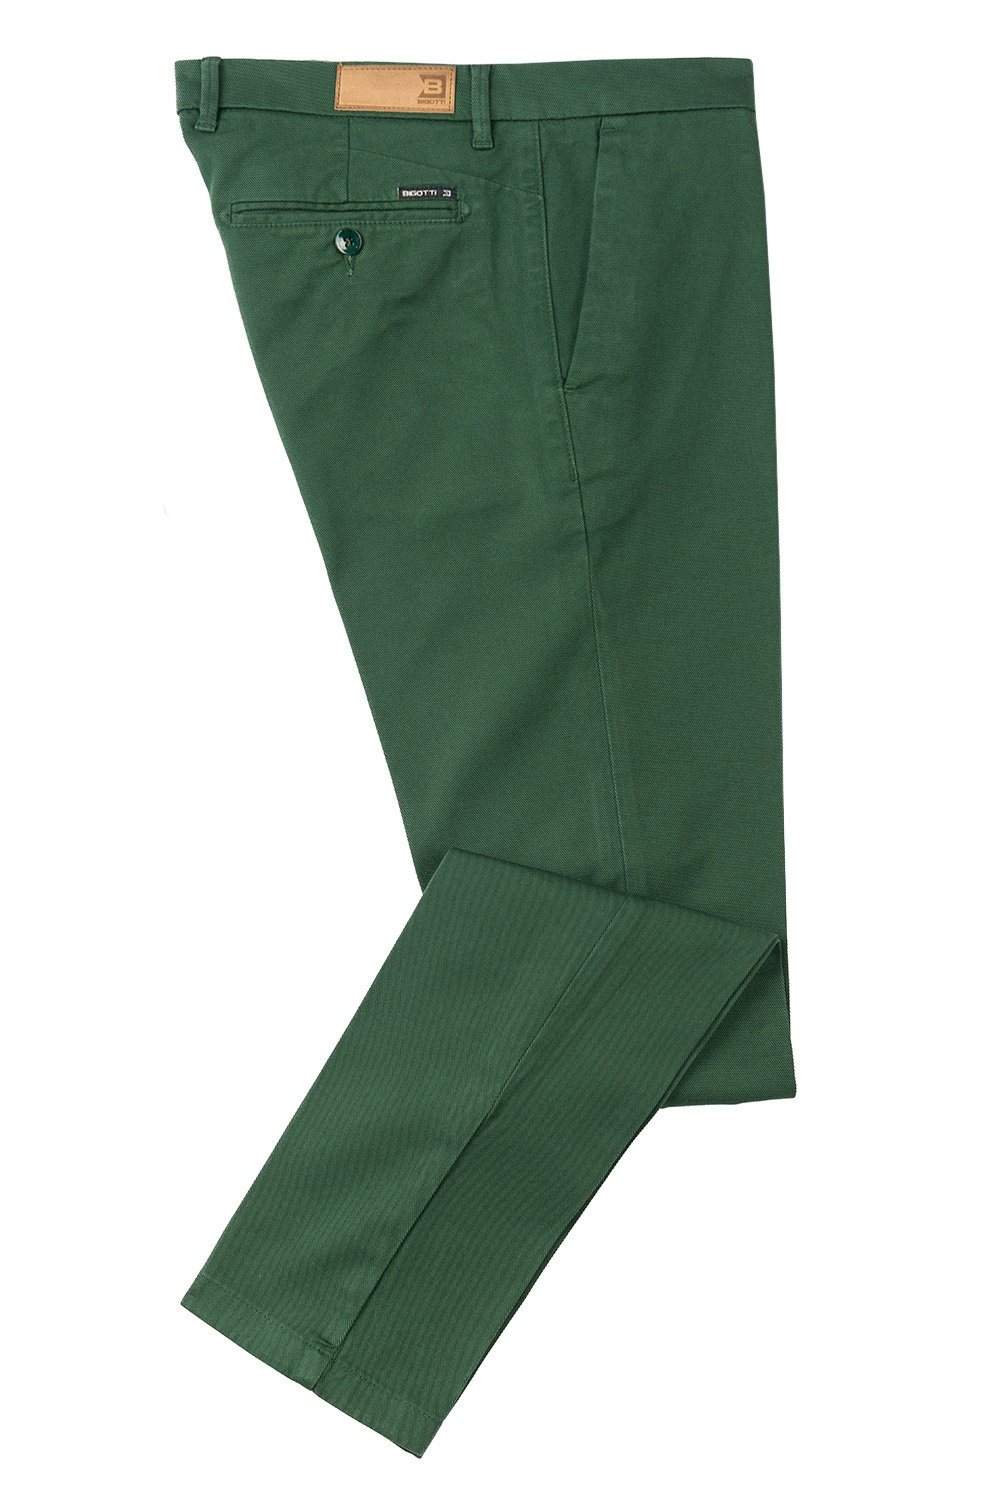 Superslim Green Plain Trouser 1